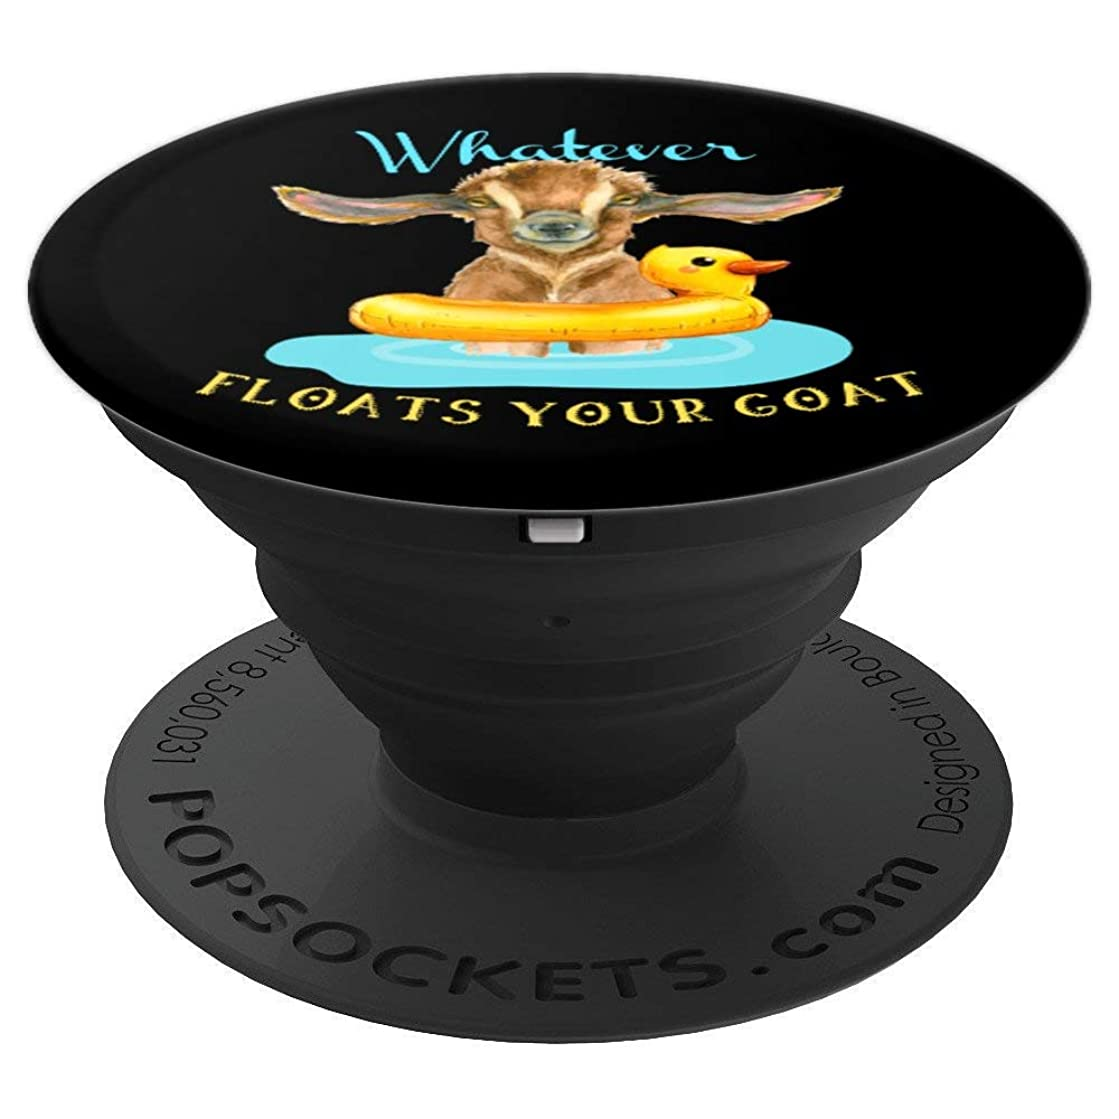 Whatever Floats Your Goat Funny Animals, Goat Gifts - PopSockets Grip and Stand for Phones and Tablets